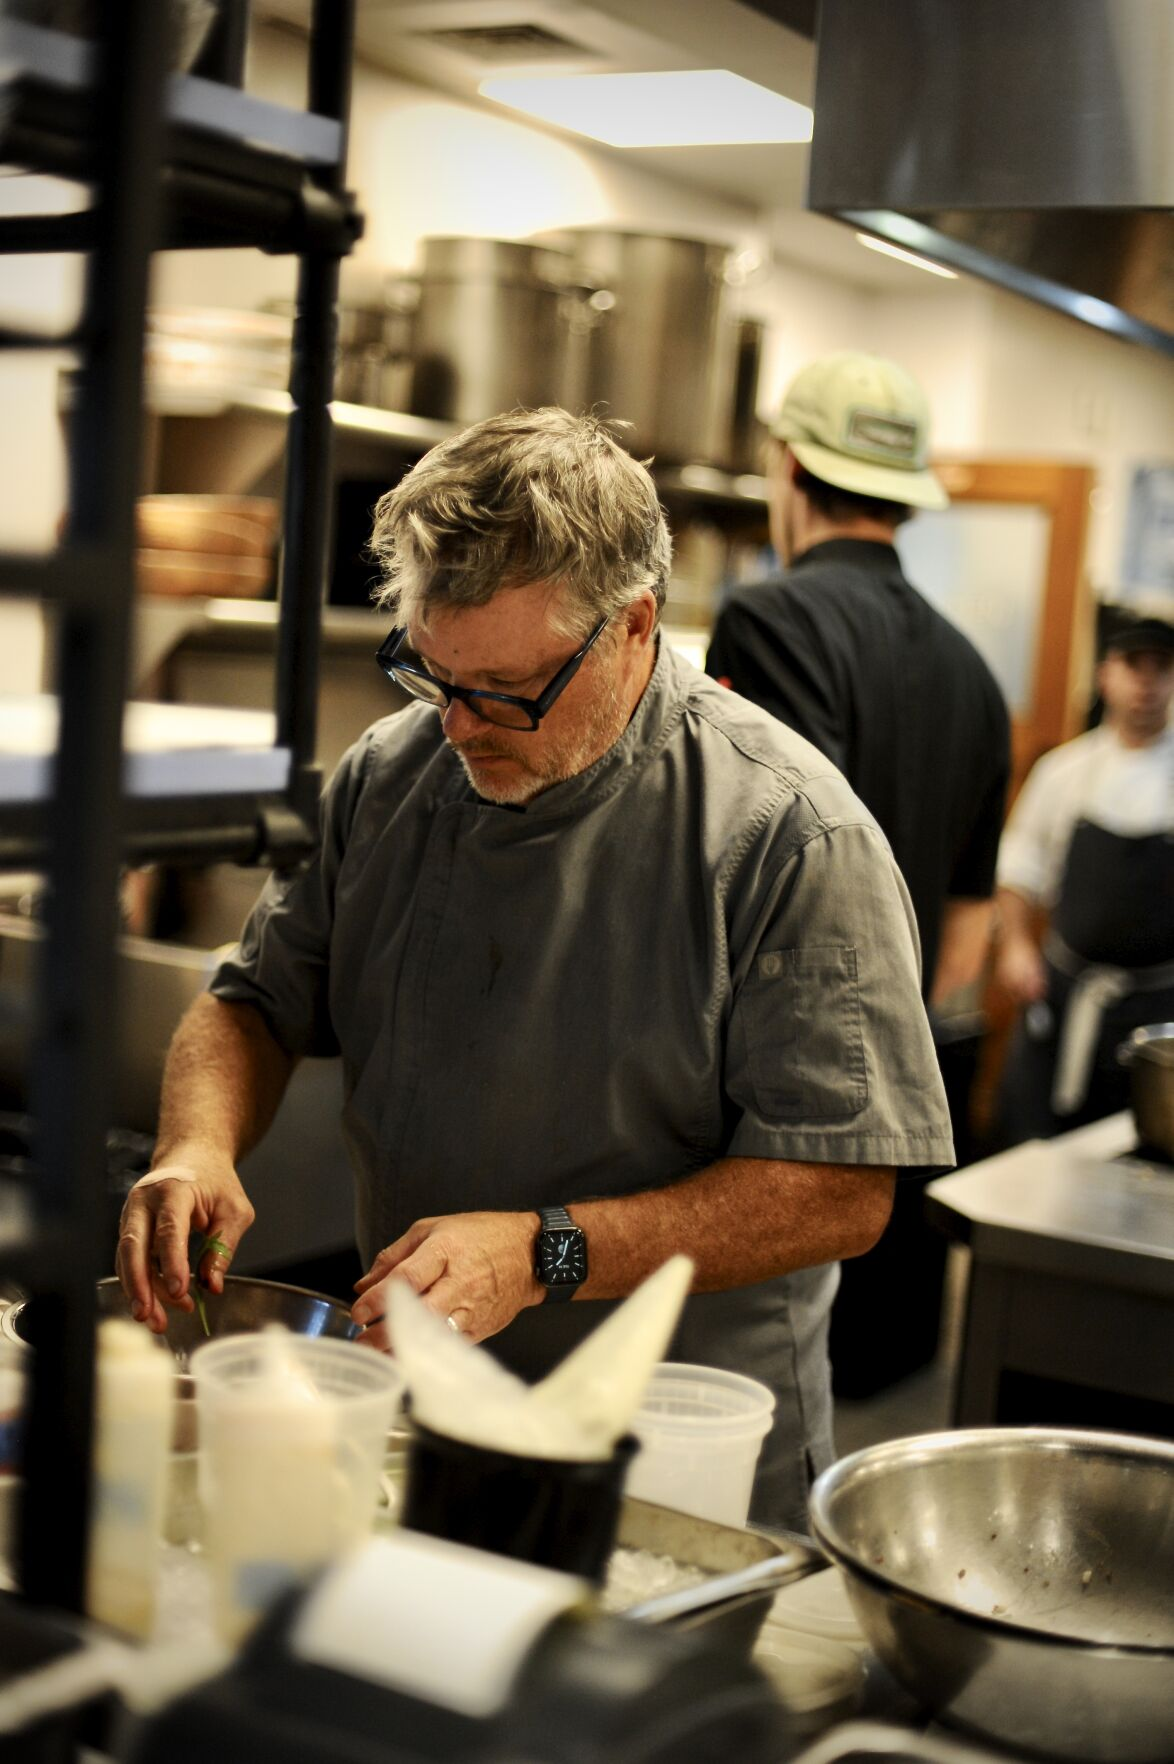 Chef and Owner Frank McClelland